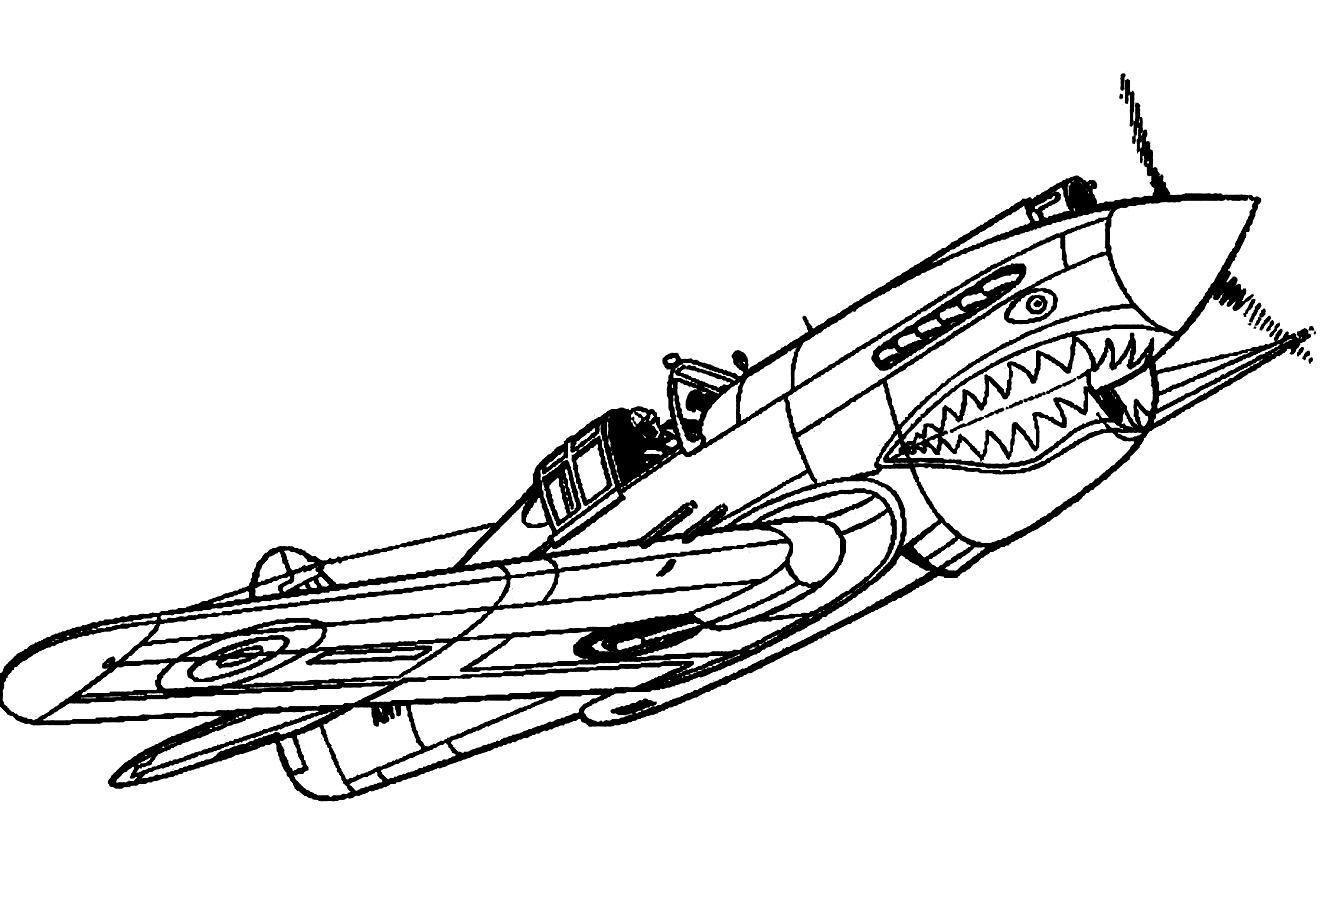 Fighter Jet Coloring Pages - Free Jet Fighter Plane Coloring Pages